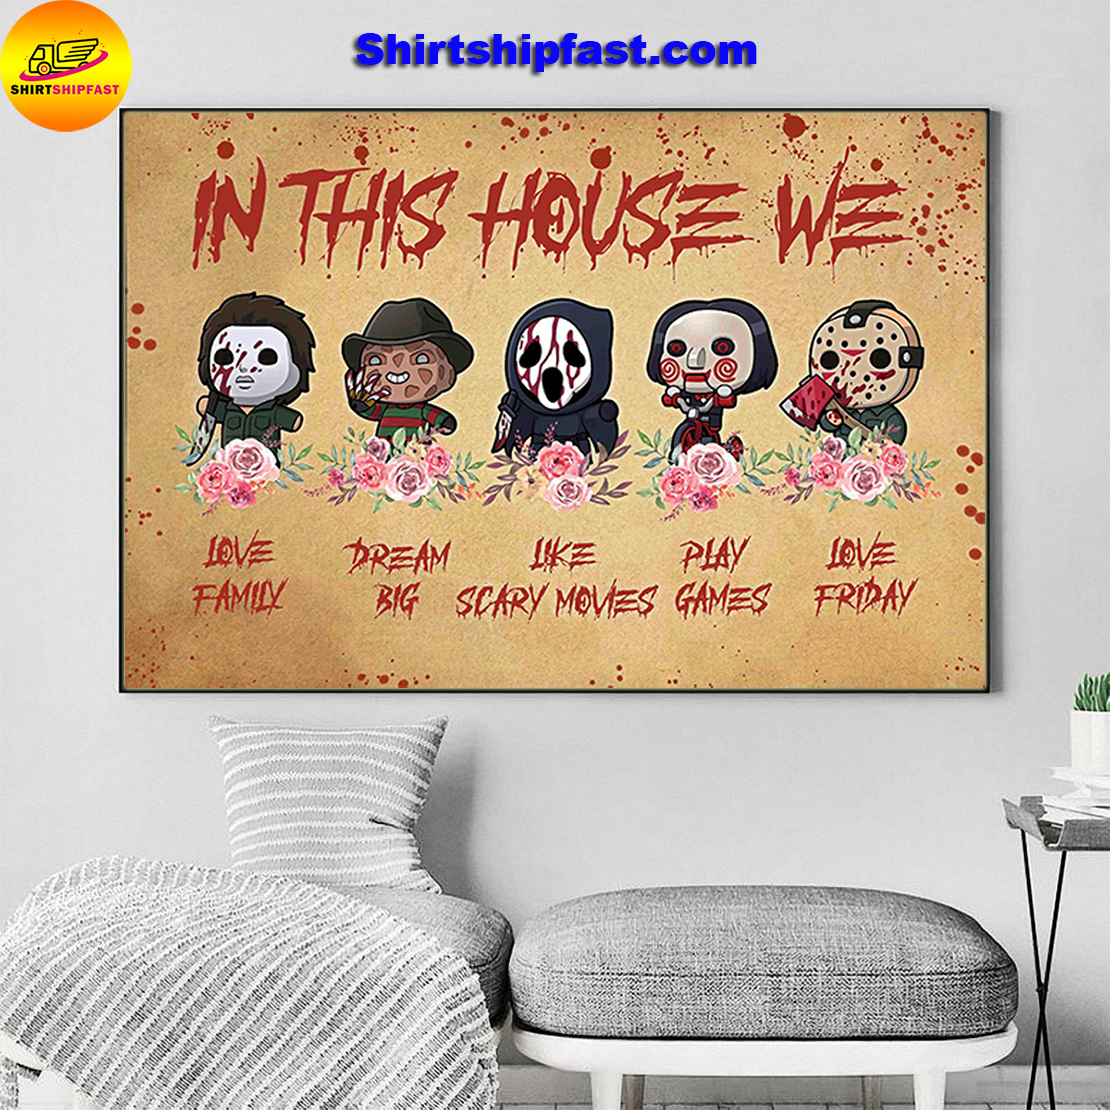 Michael Myers Freddy Krueger Ghostface Jason Voorhees chibi in this house we poster - Picture 2